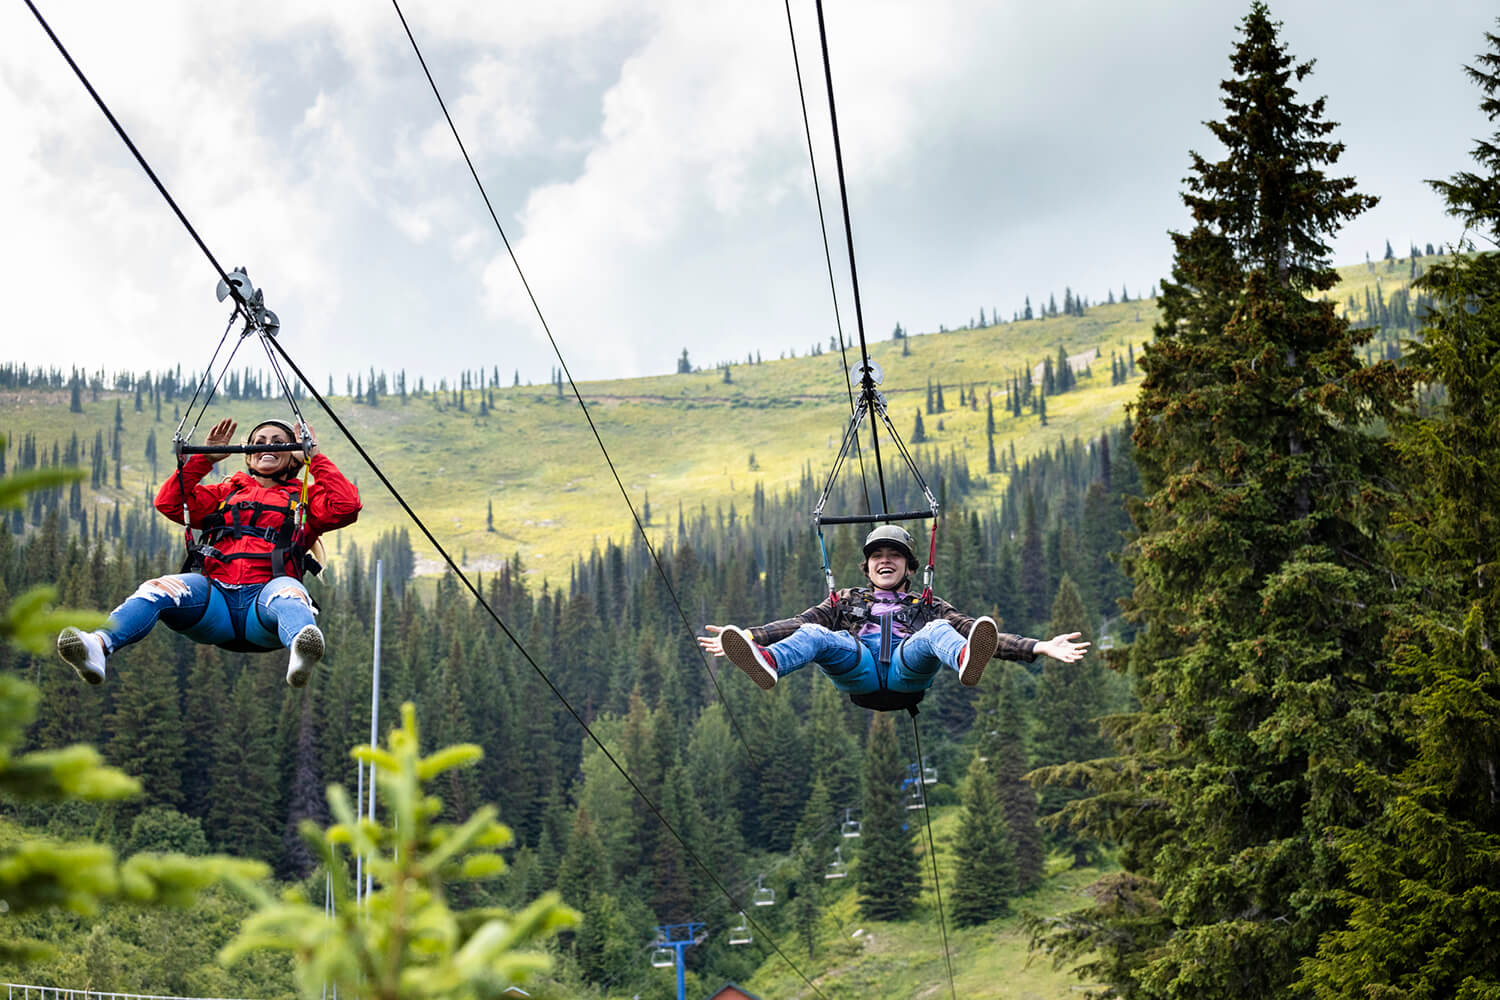 two girls ziplining side-by-side down a tree covered mountain at Schweitzer Mountain Resort